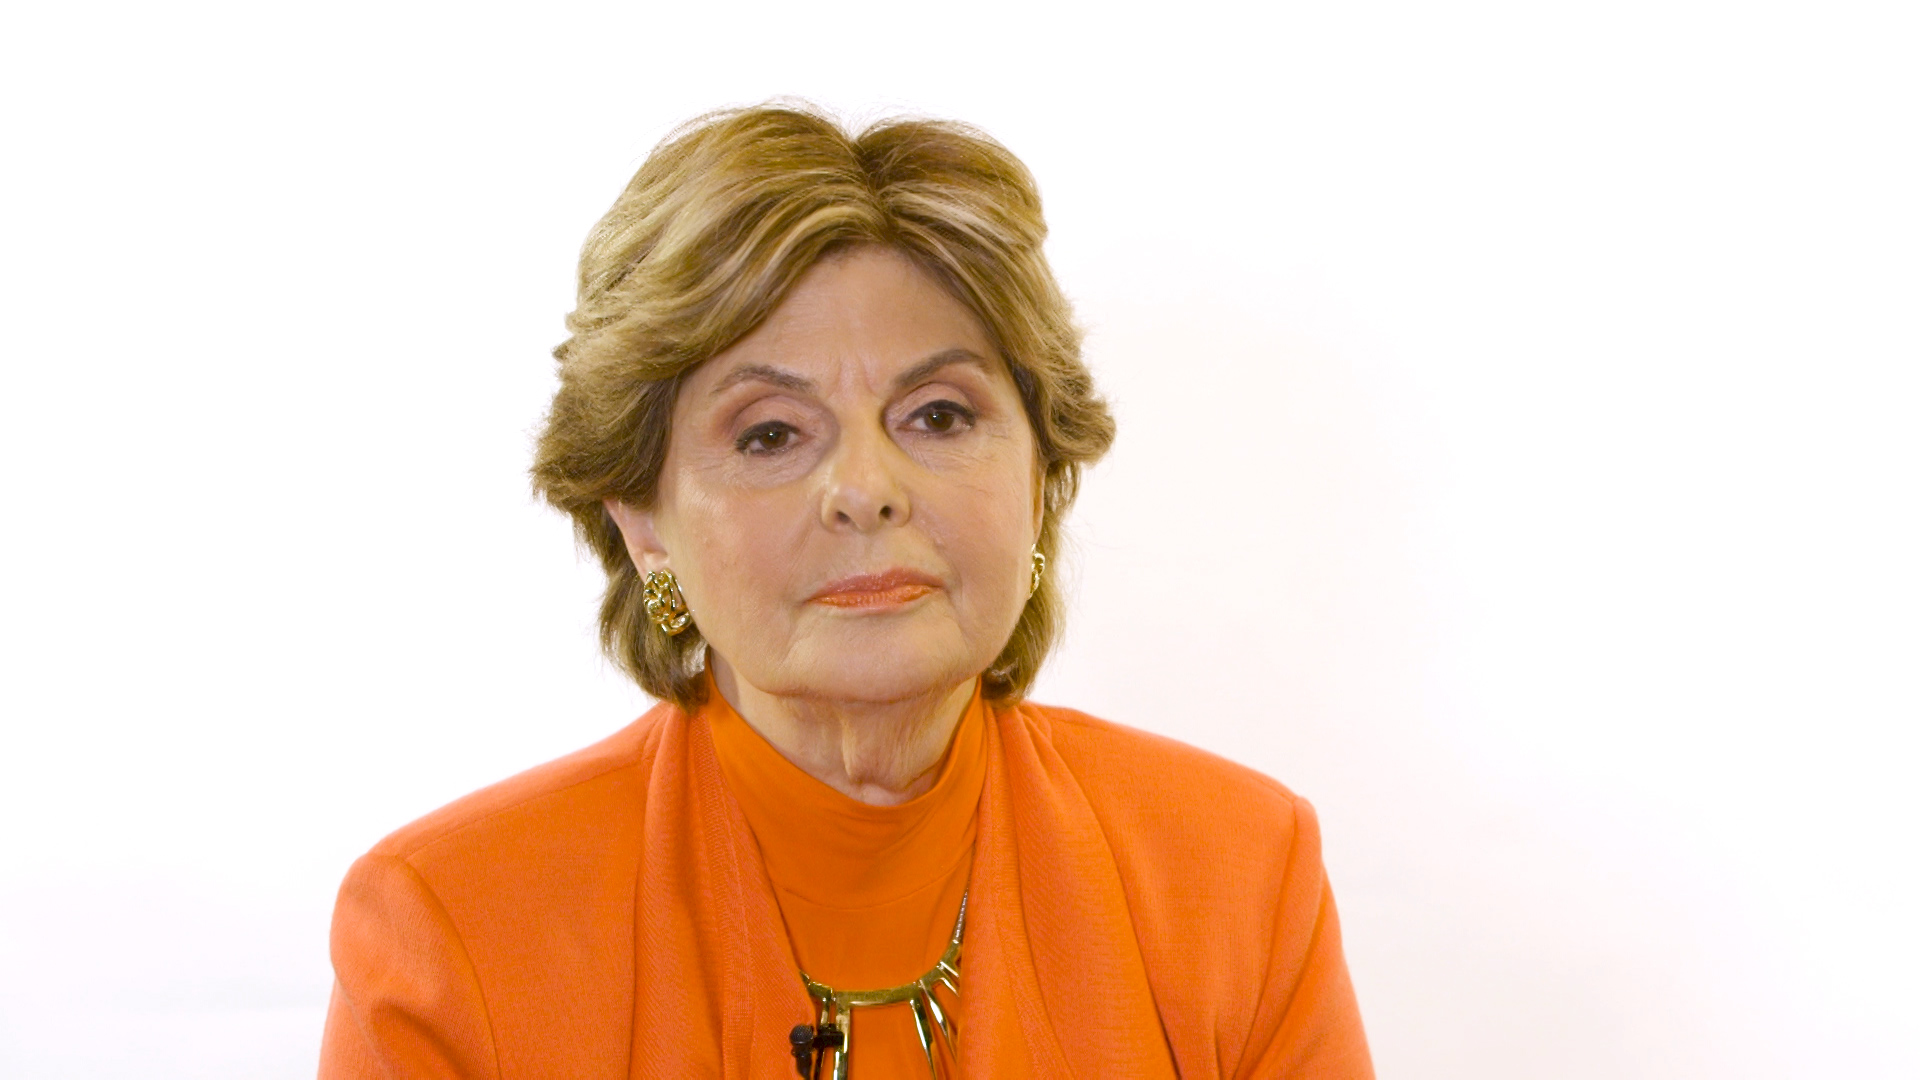 Gloria Allred States Journalism Has Helped Fuel The #MeToo Movement